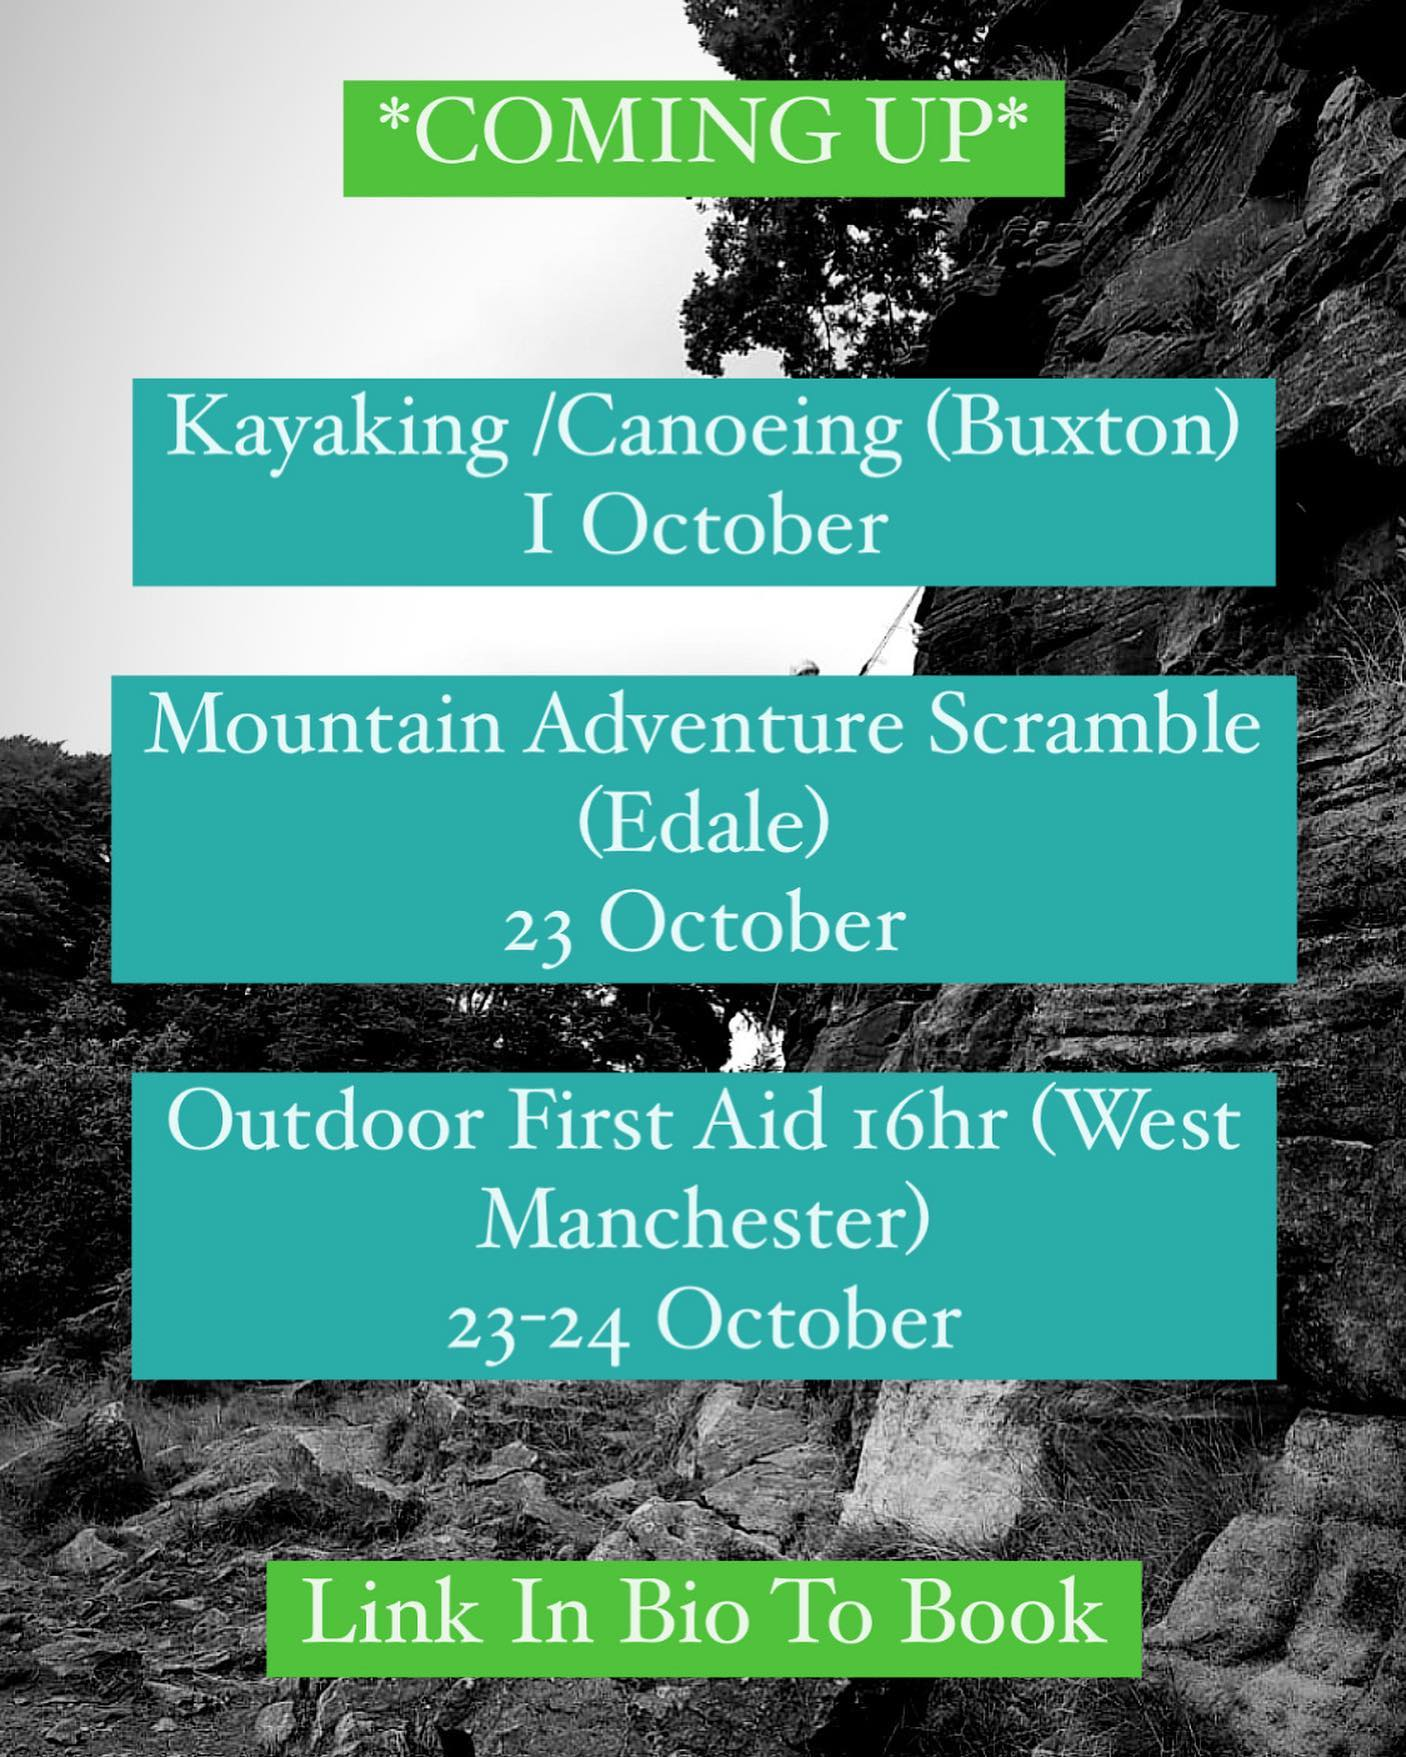 Join our friendly, qualified instructors for these sessions, just for fun or to learn some new skills, we hope to see you here!  More info and booking at www.wilderness-development.com, link in our bio 🧗♀️⛰🧗♀️ . . . #wildernessdevelopment #smallbusiness #rockclimbing #climbing #scrambling #canoeing #kayaking #abseiling #trysomethingnew #peakdistrict #peakdistrictnationalpark #peakdistrictclimbing #mountainsfellsandhikes #roamtheuk #outdoorpursuits #outdooradventures #outdooractivities #nationalparksuk #booknow